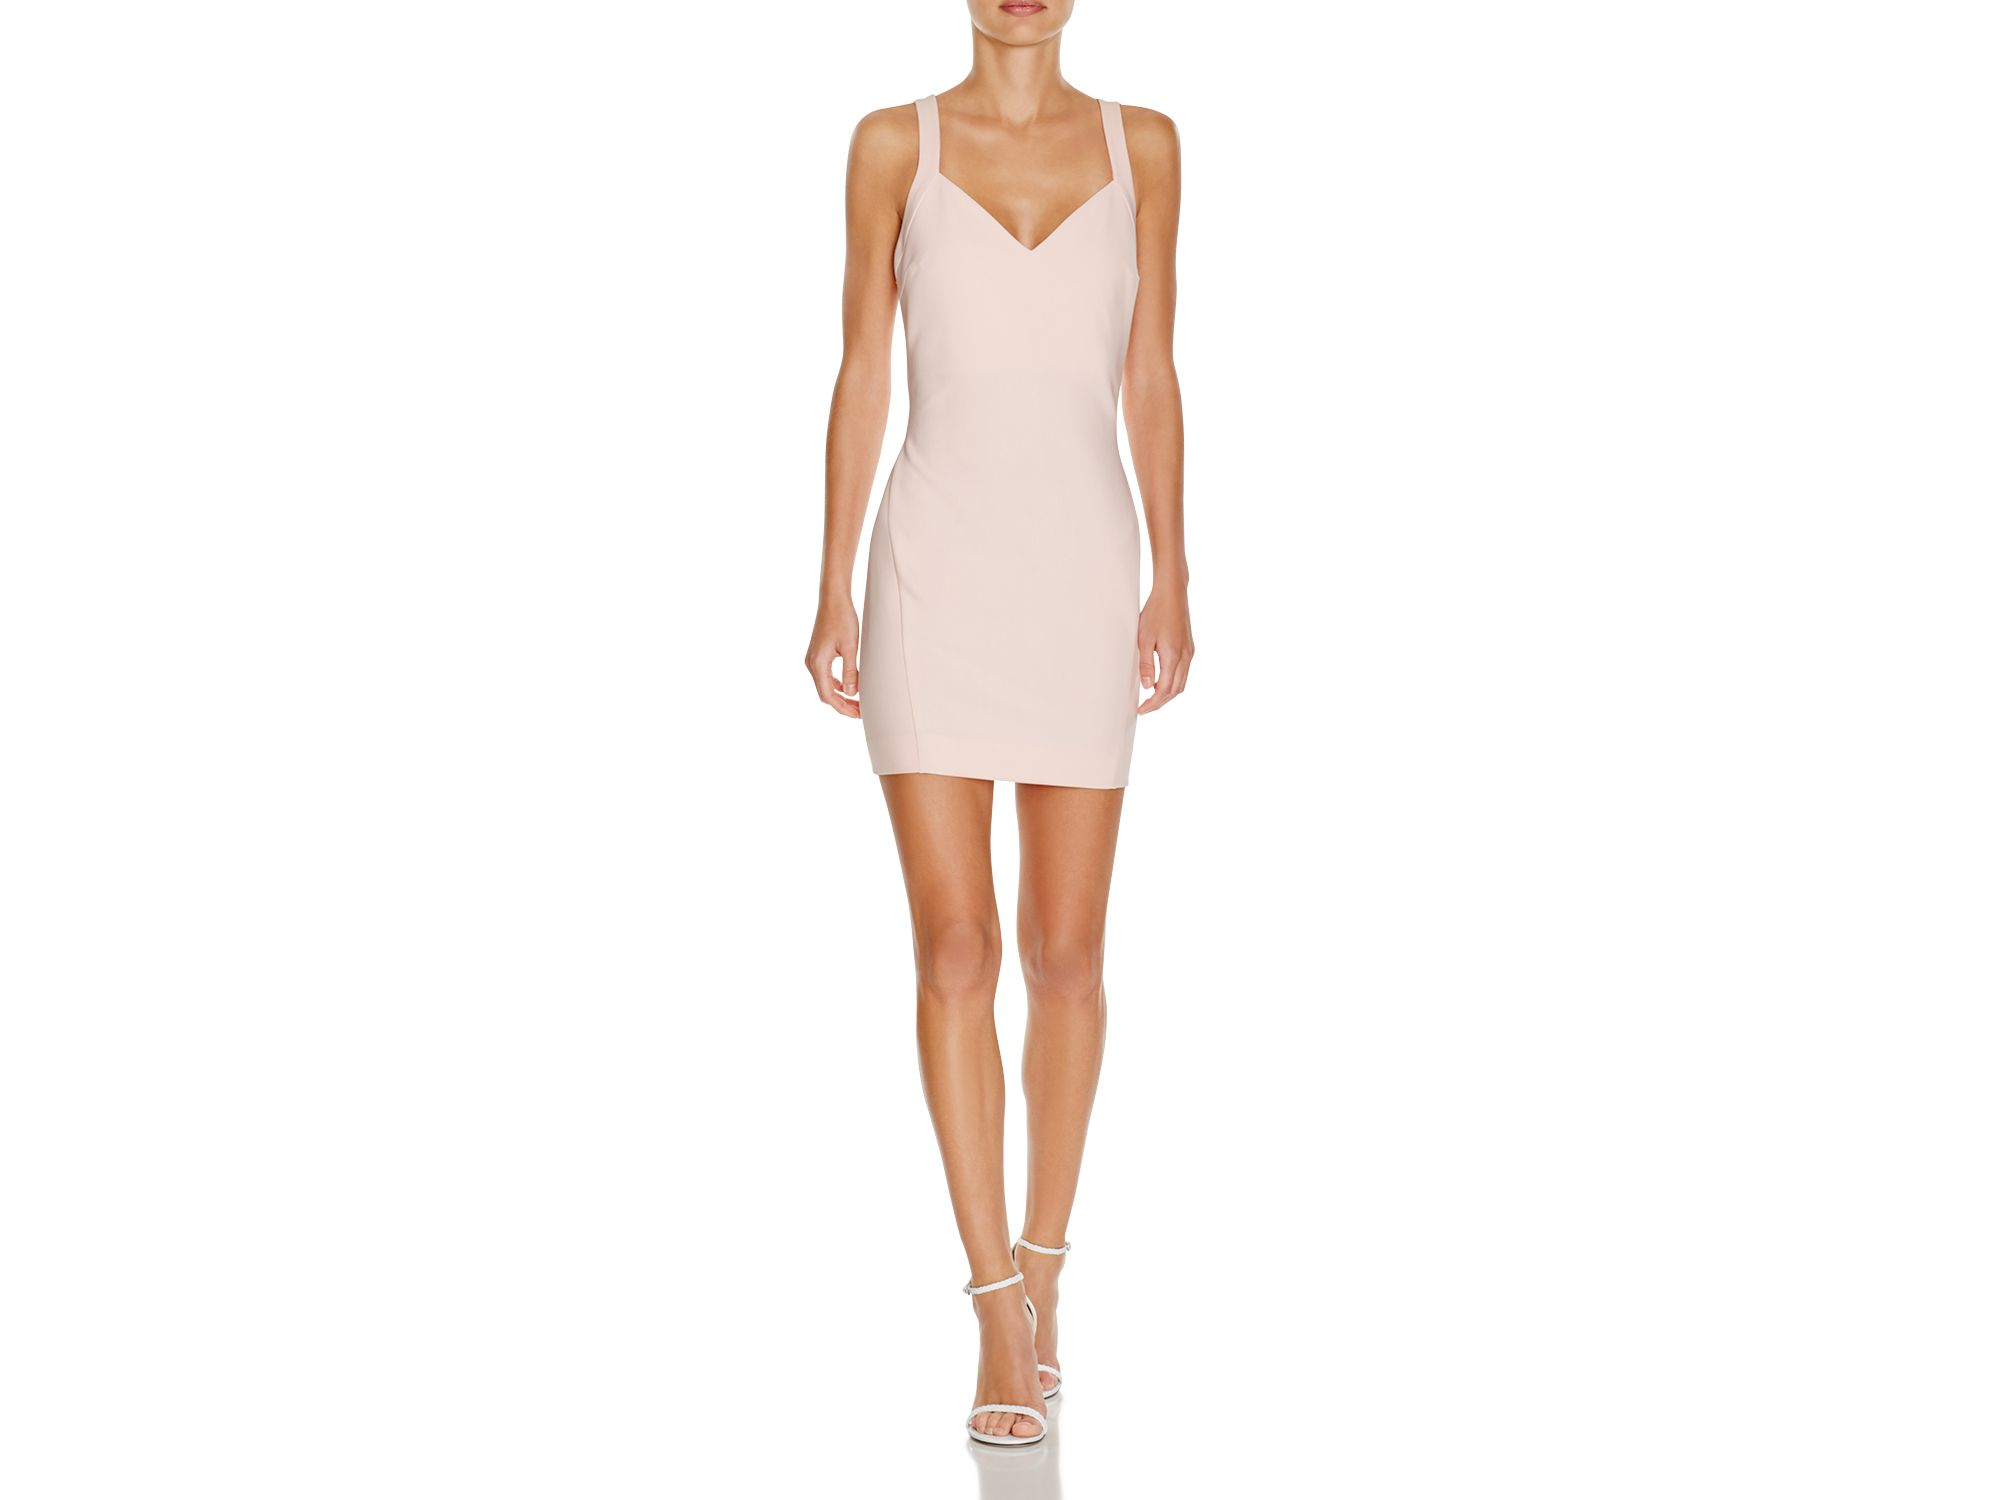 Lyst - Likely Benson Bodycon Dress in White 79e16d1a8ad3